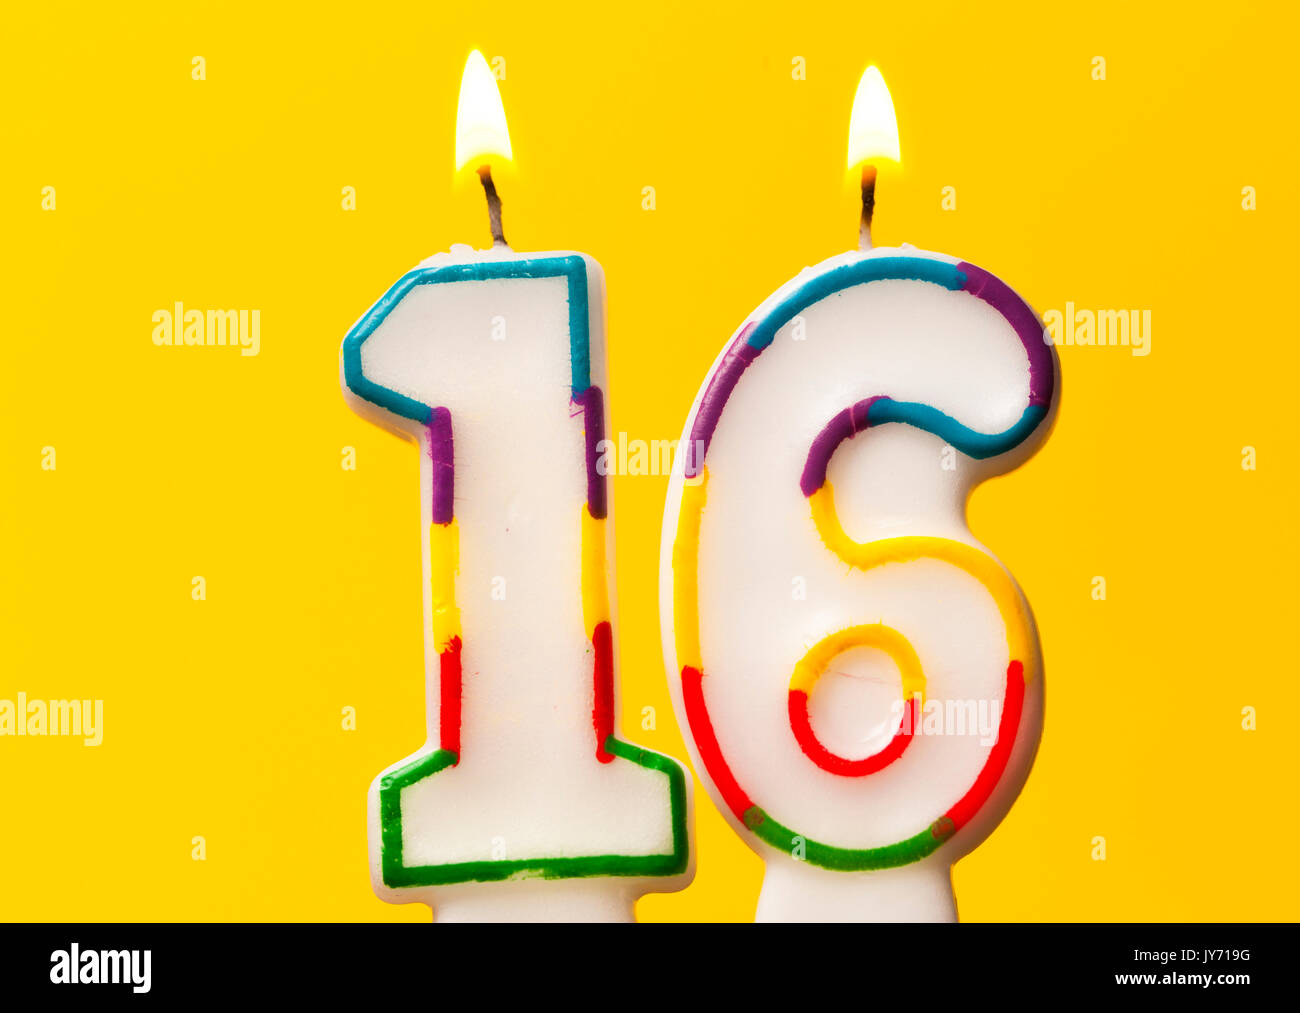 Number 16 Birthday Celebration Candle Against A Bright Yellow Background